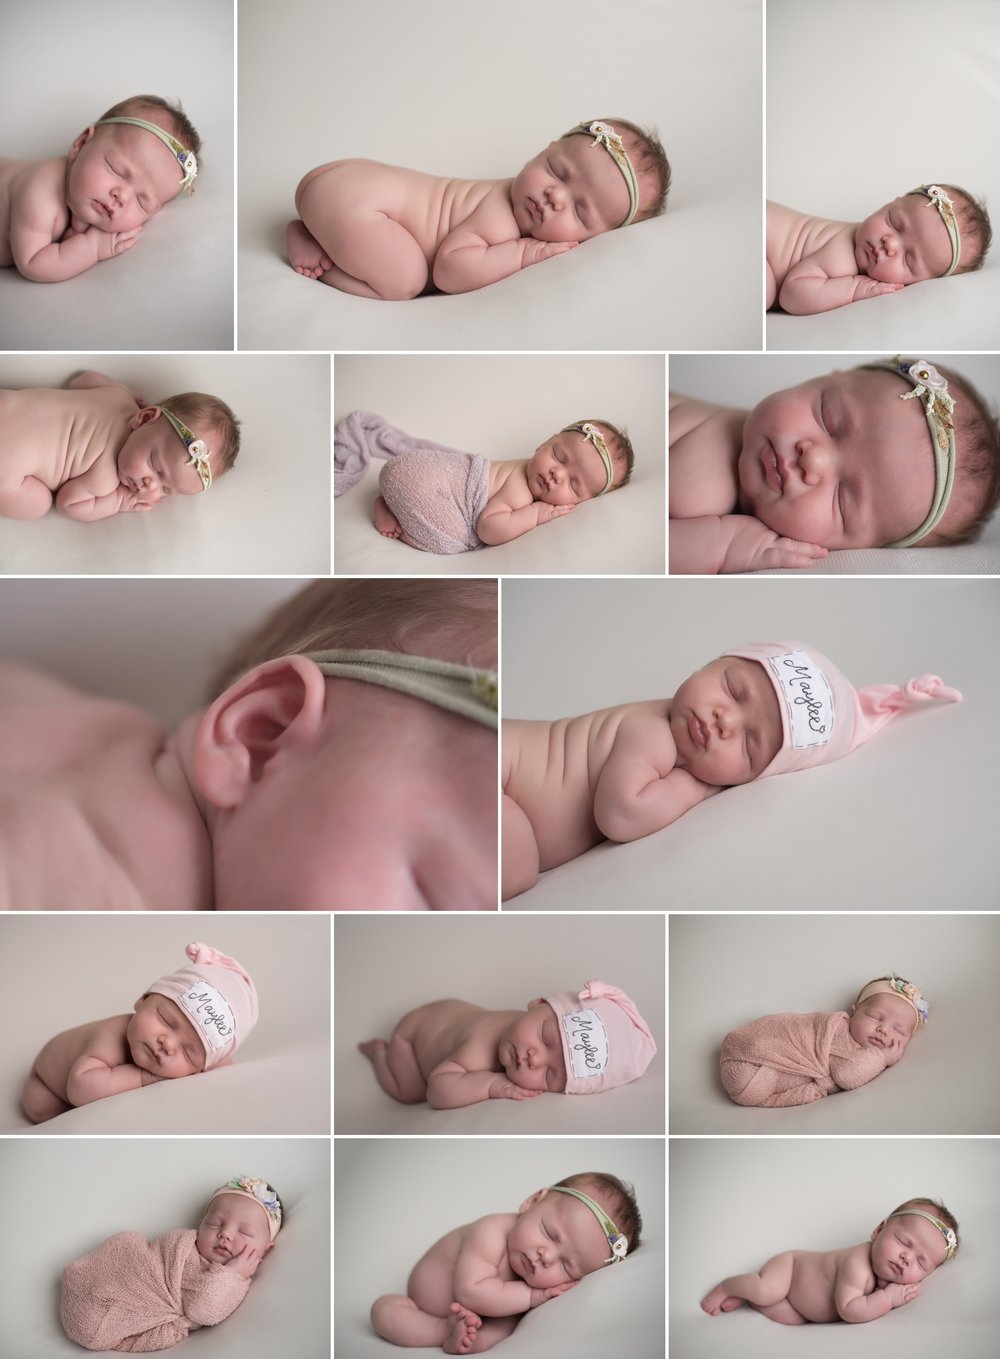 southwest-kansas-newborn-photography 3.jpg